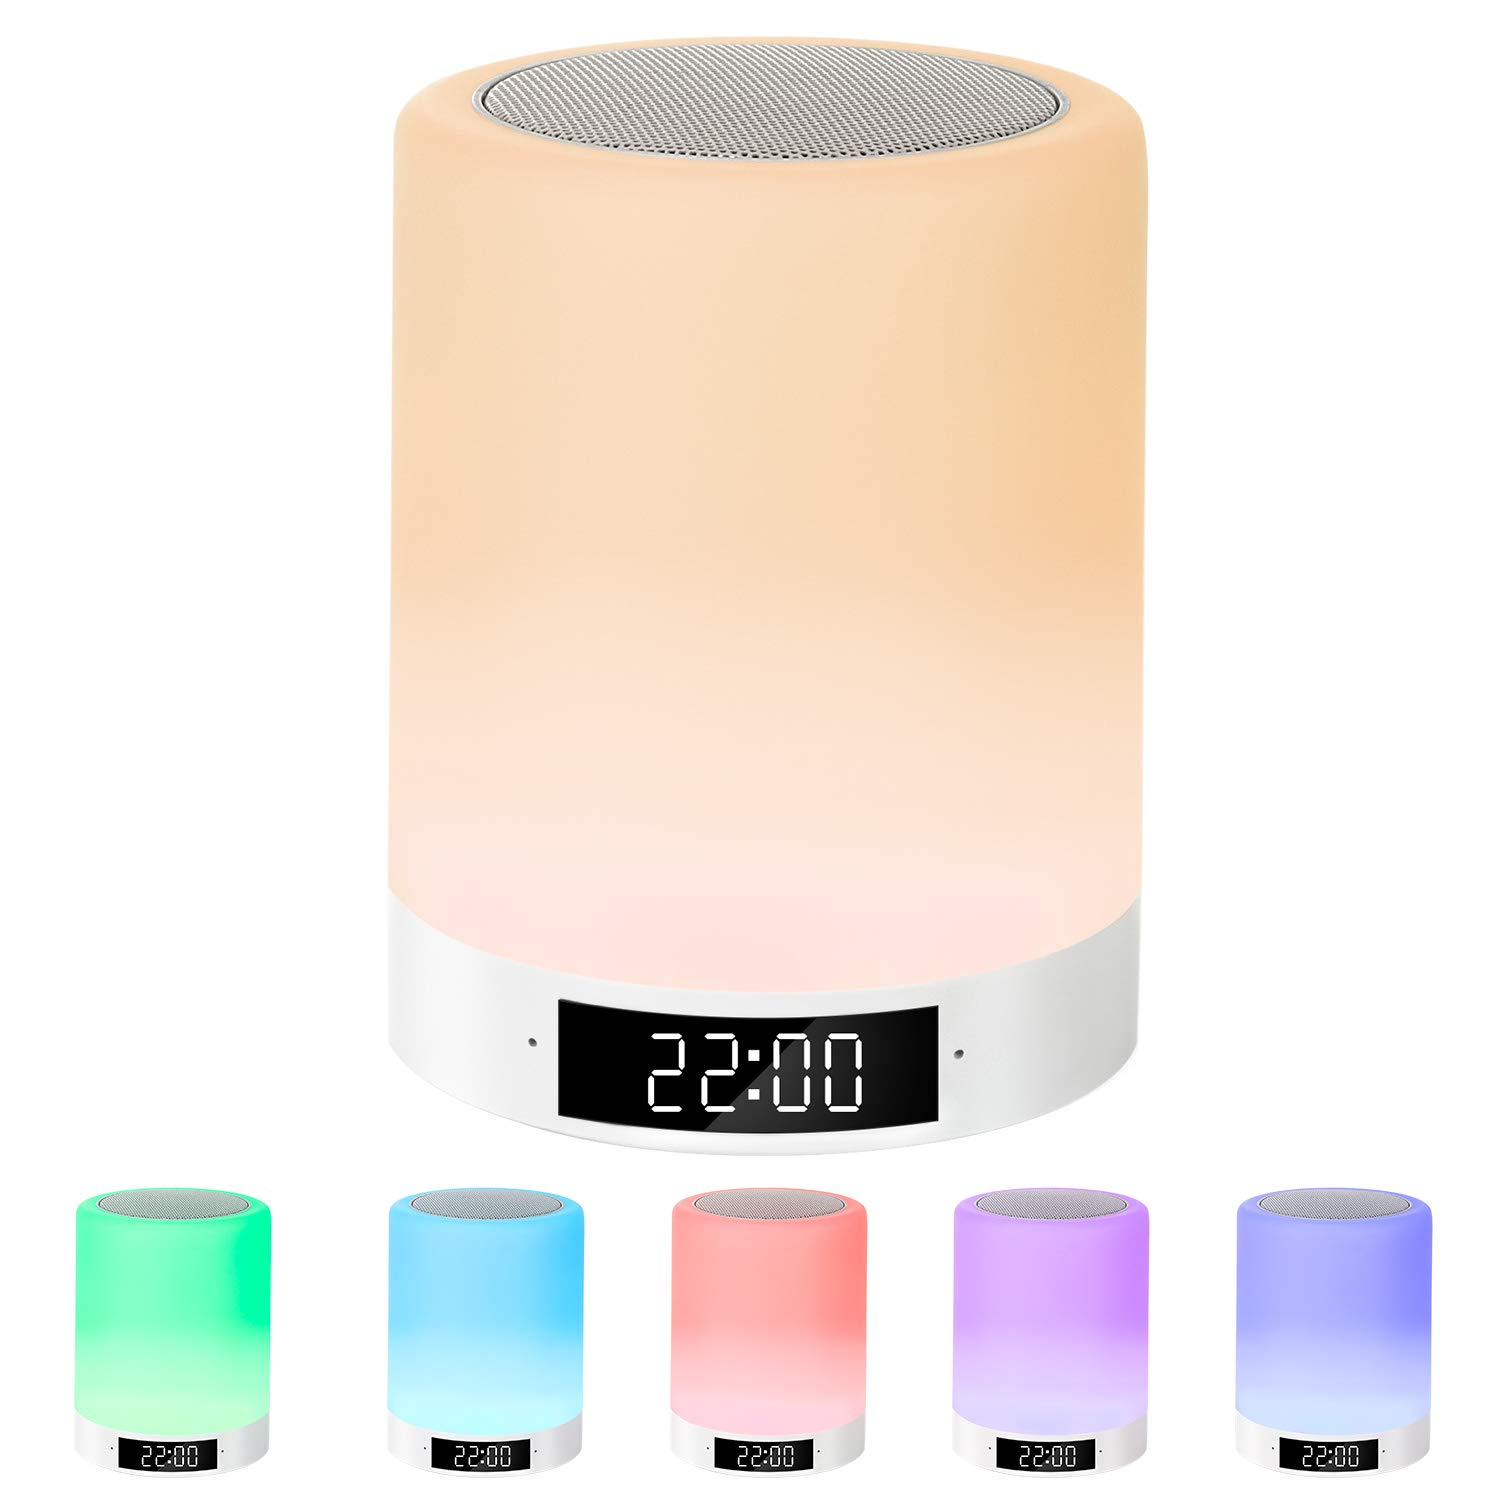 Night Light Bluetooth Speaker, Macrimo LED Night Lamp Touch Sensor Table Lamp Dimmable Warm White Light & 7 Color 3 brightnesses Changing with Alarm Clock/FM/TF Card Mode Gift for Women Teens Kids by Macrimo